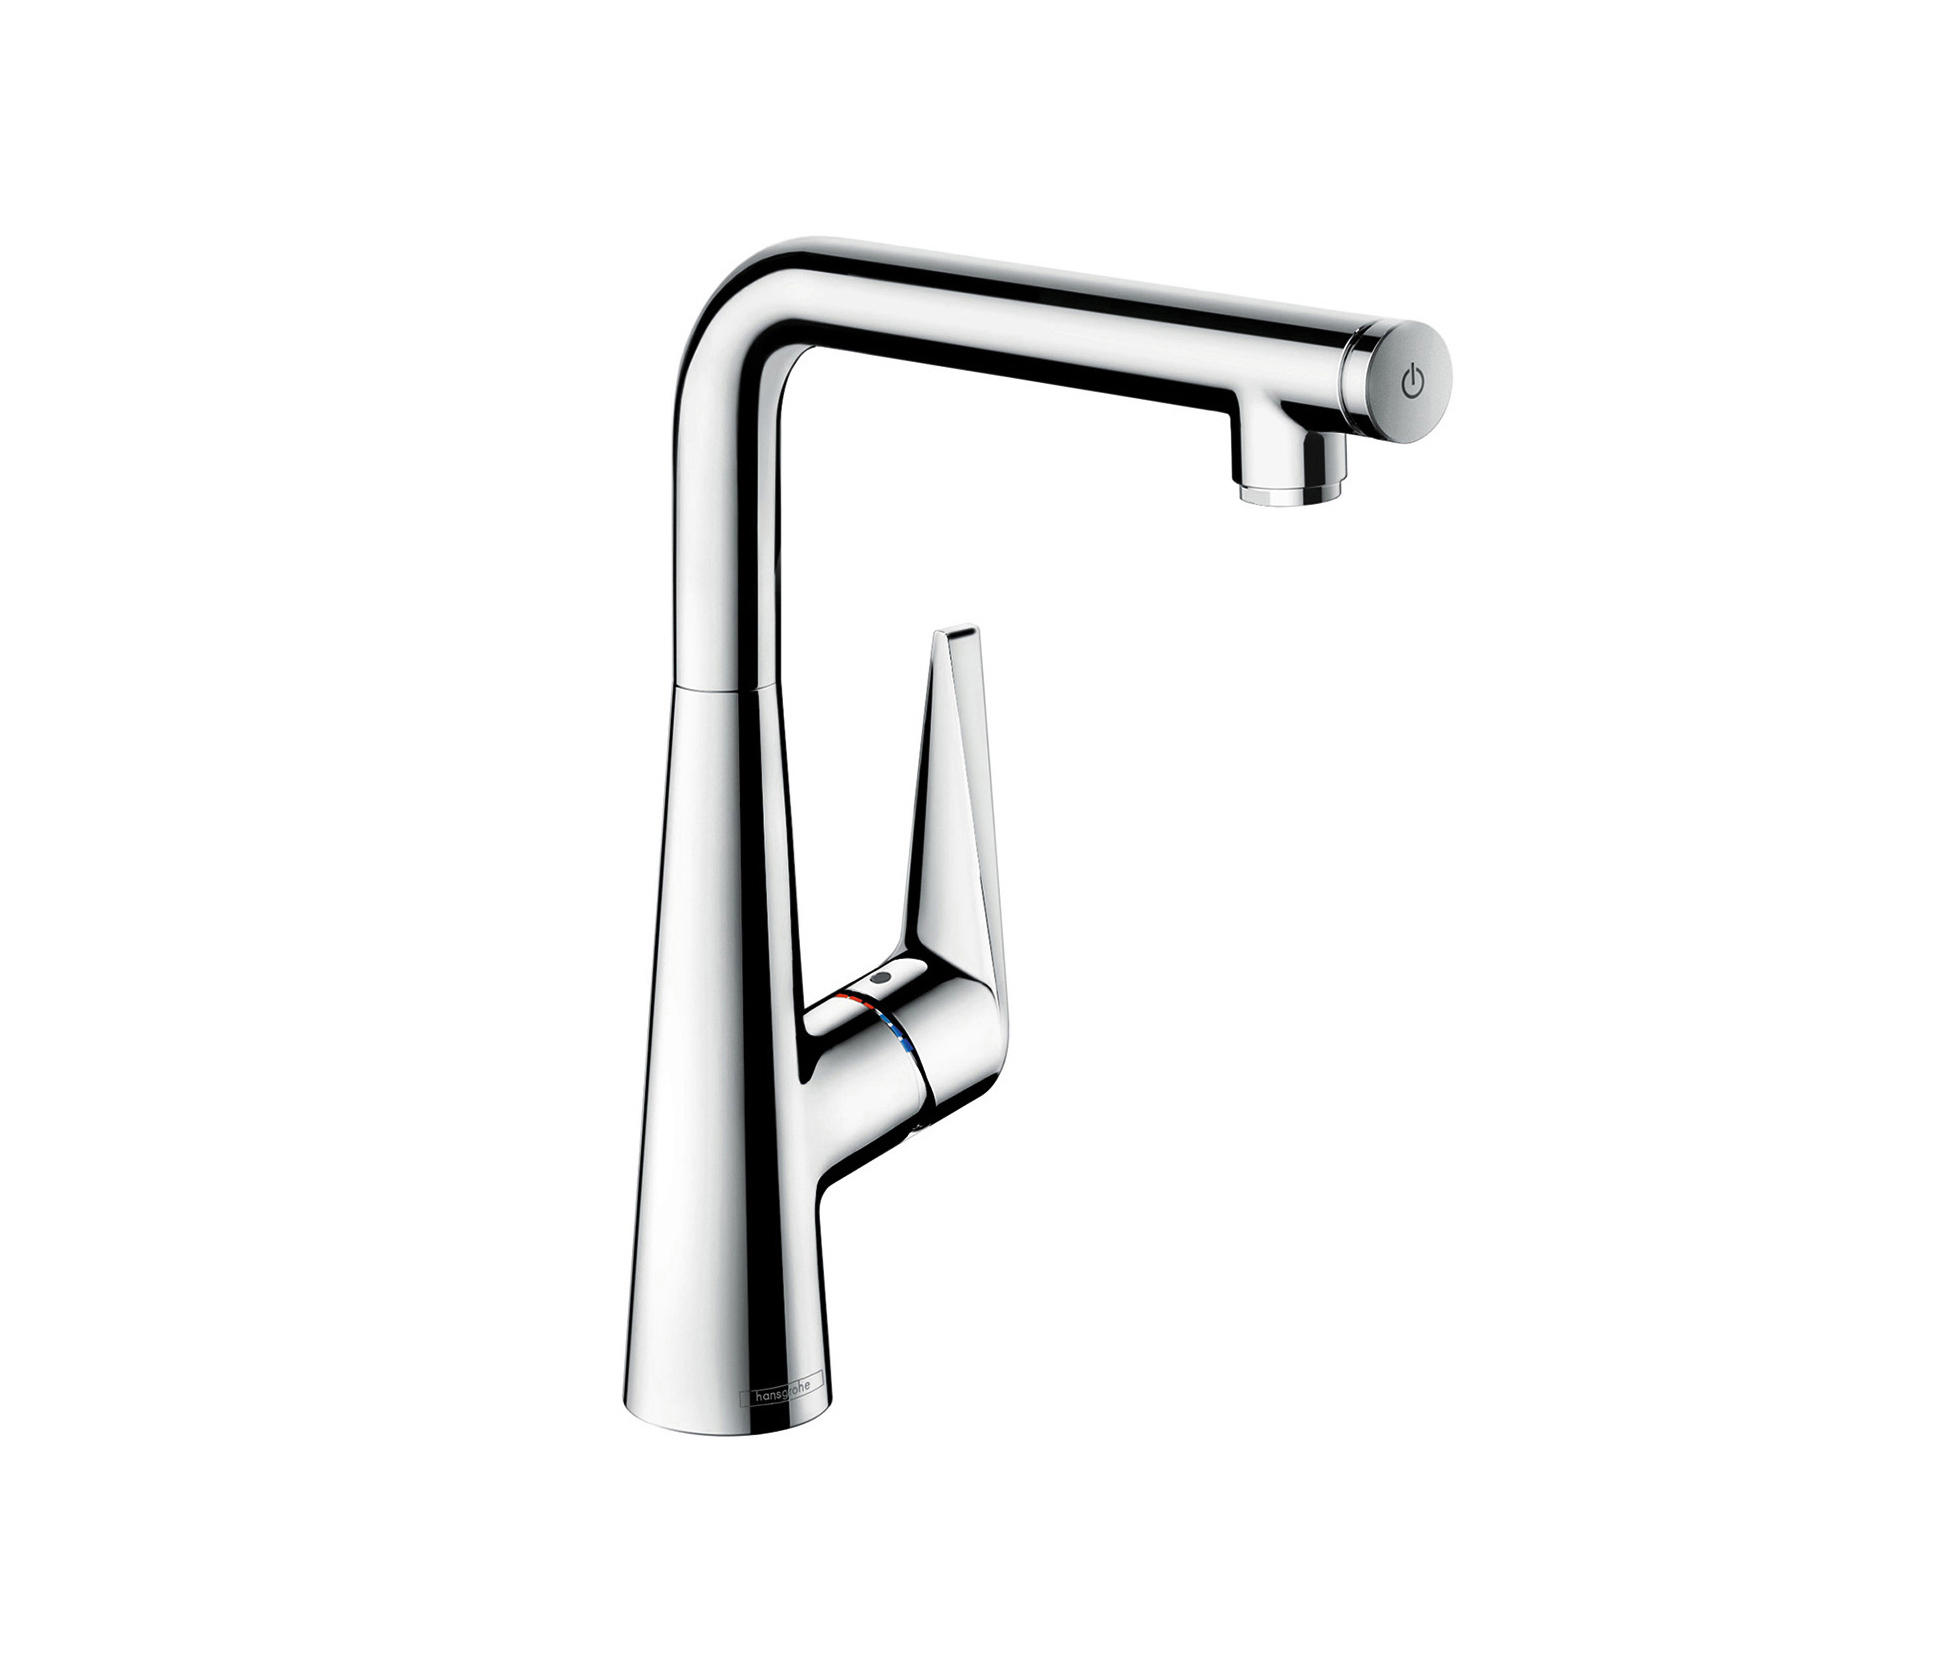 hansgrohe talis select s 300 mitigeur de cuisine robinetterie de cuisine de hansgrohe. Black Bedroom Furniture Sets. Home Design Ideas